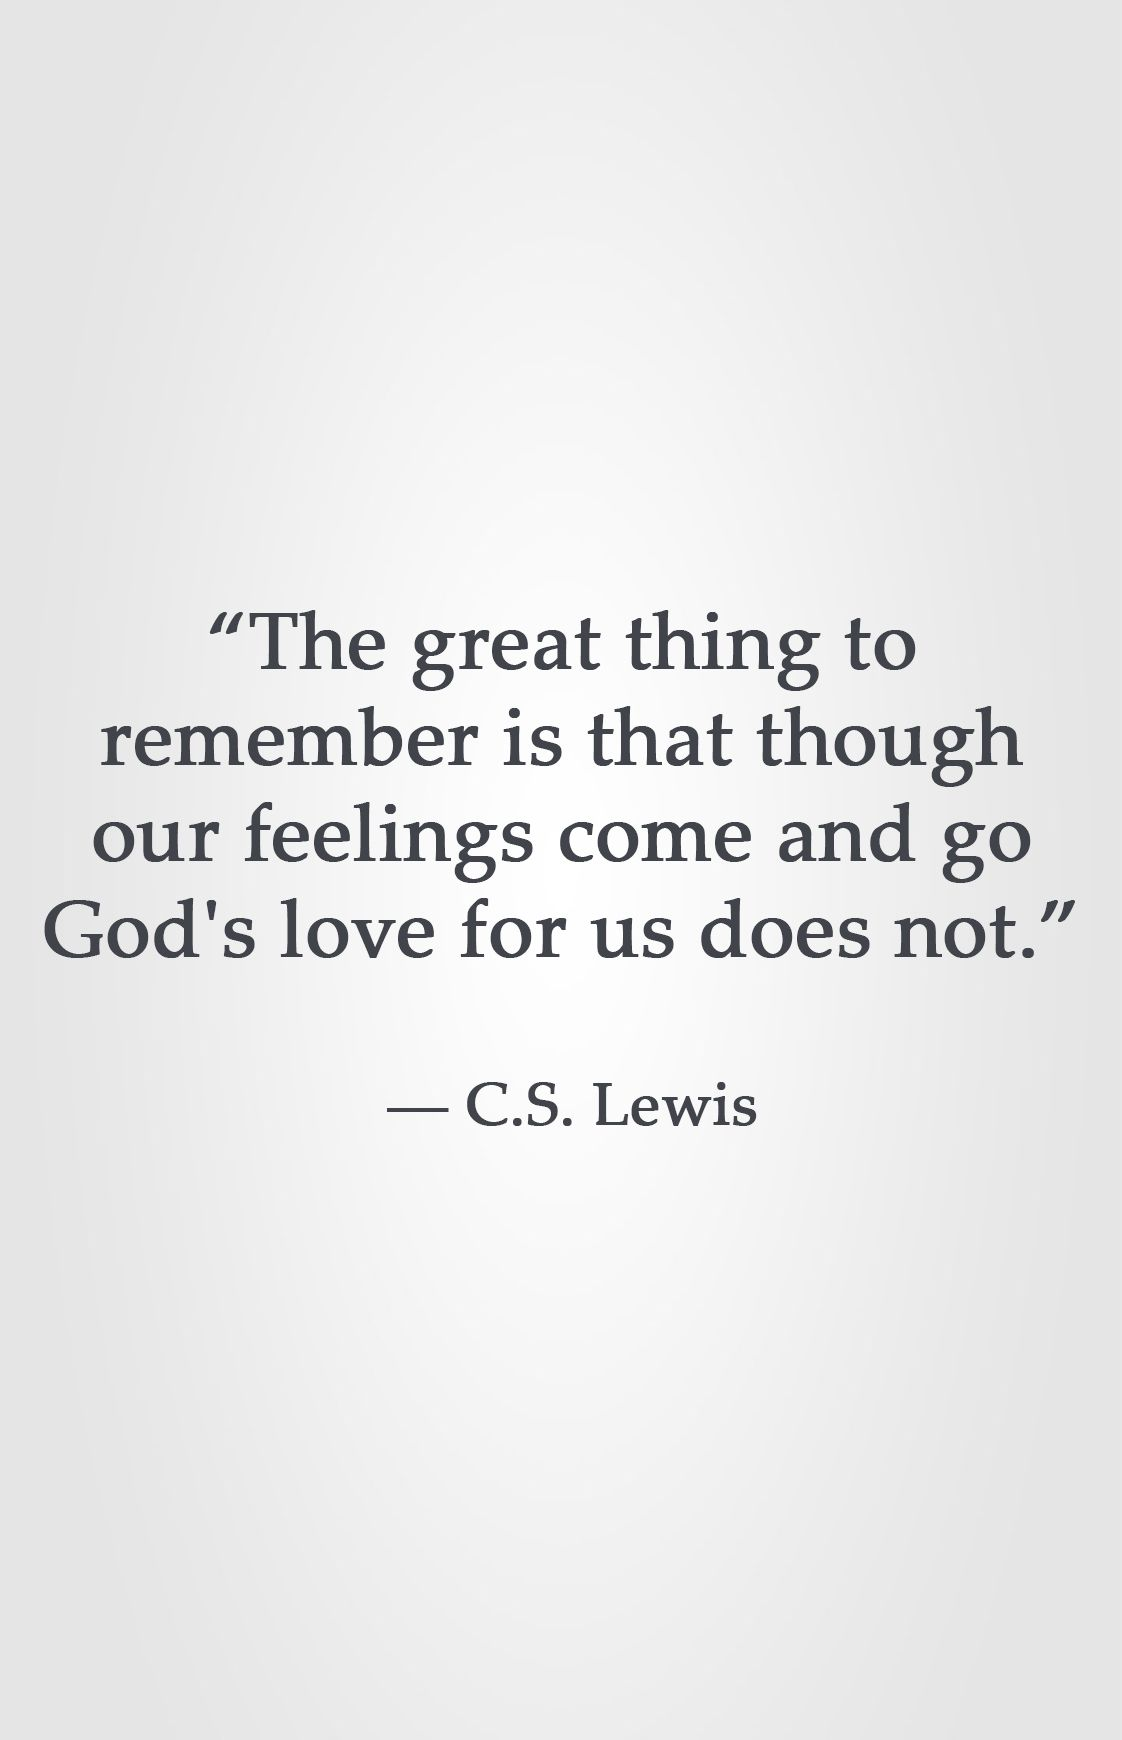 God's Love Quotes New The Great Thing To Remember Is That Though Our Feelings Come And Go